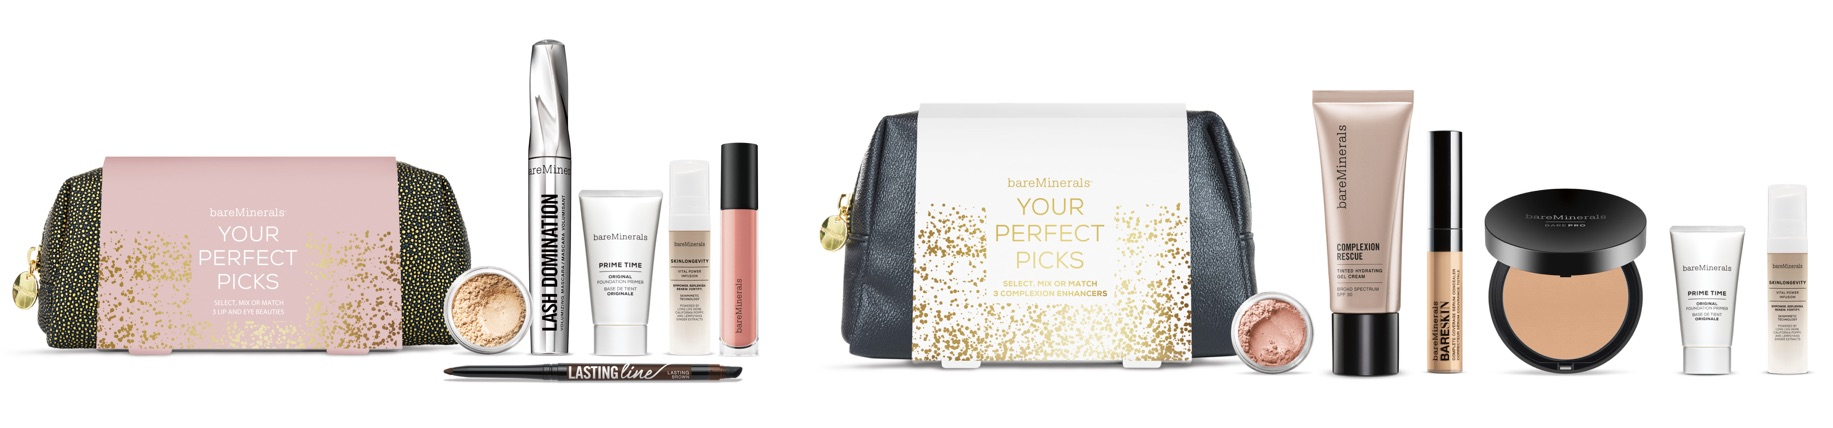 Customizable makeup kits from bareMinerals